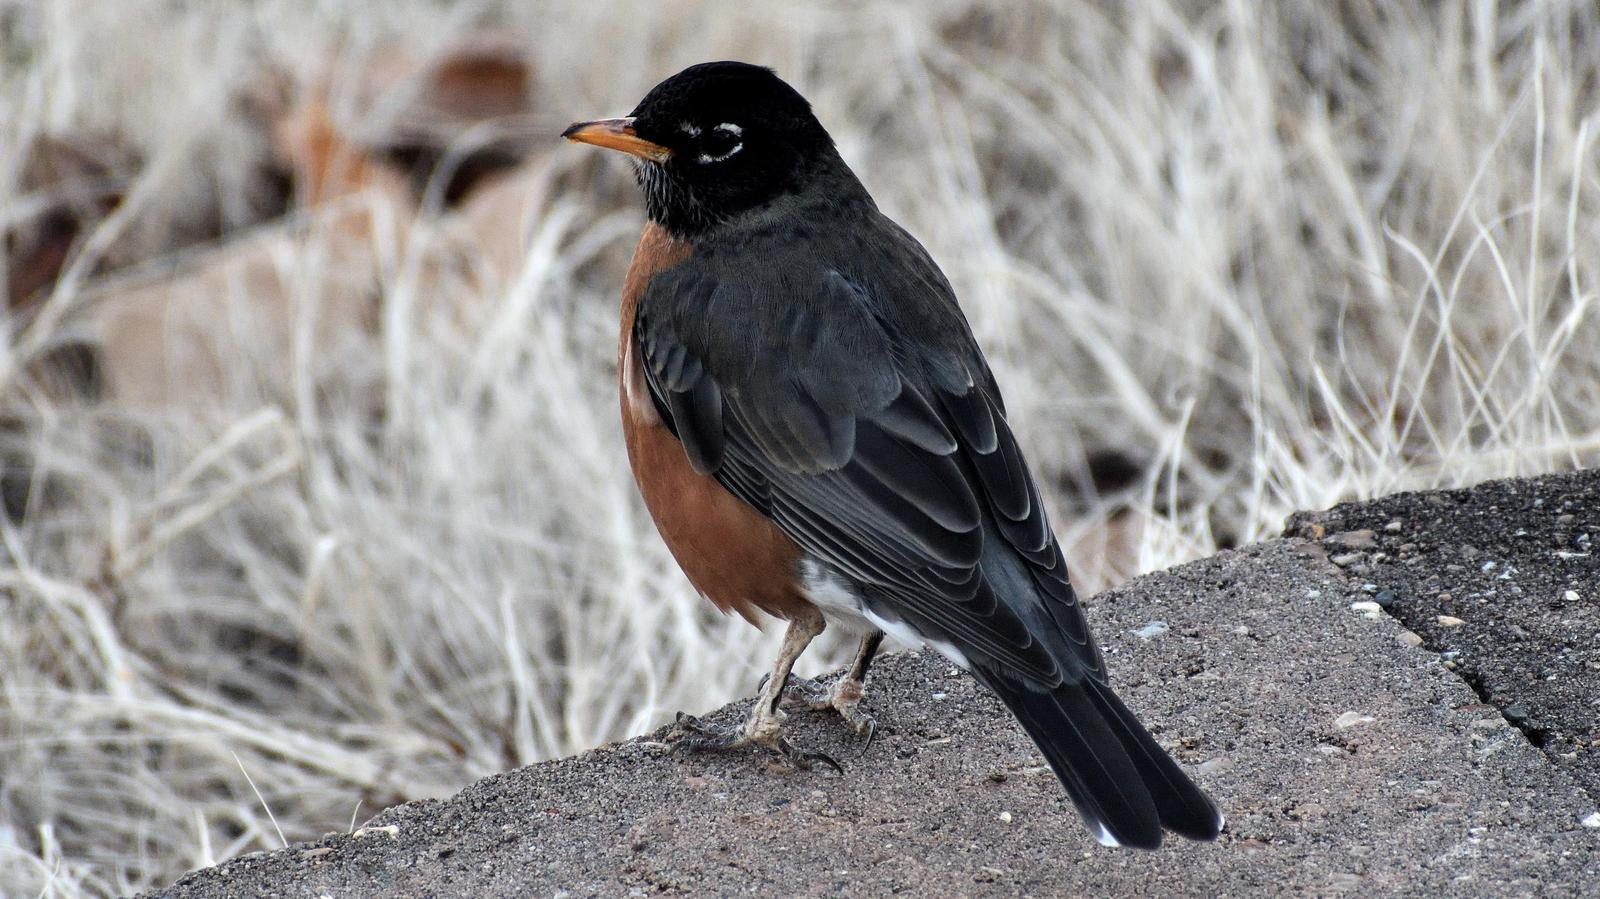 American Robin Photo by RM Beck